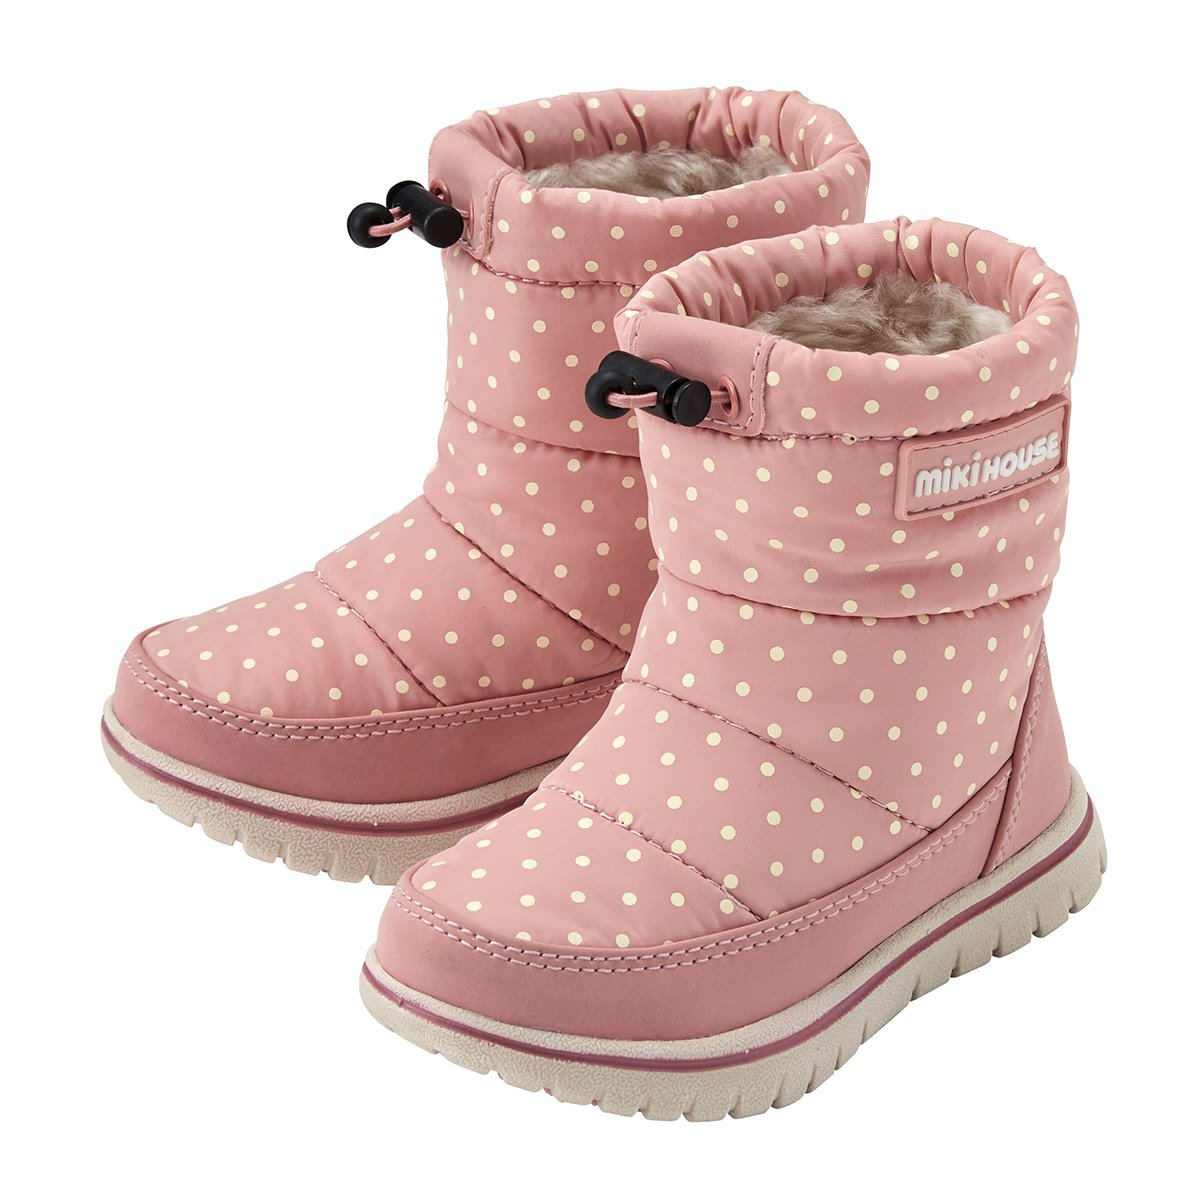 MIKI HOUSE BOOTS